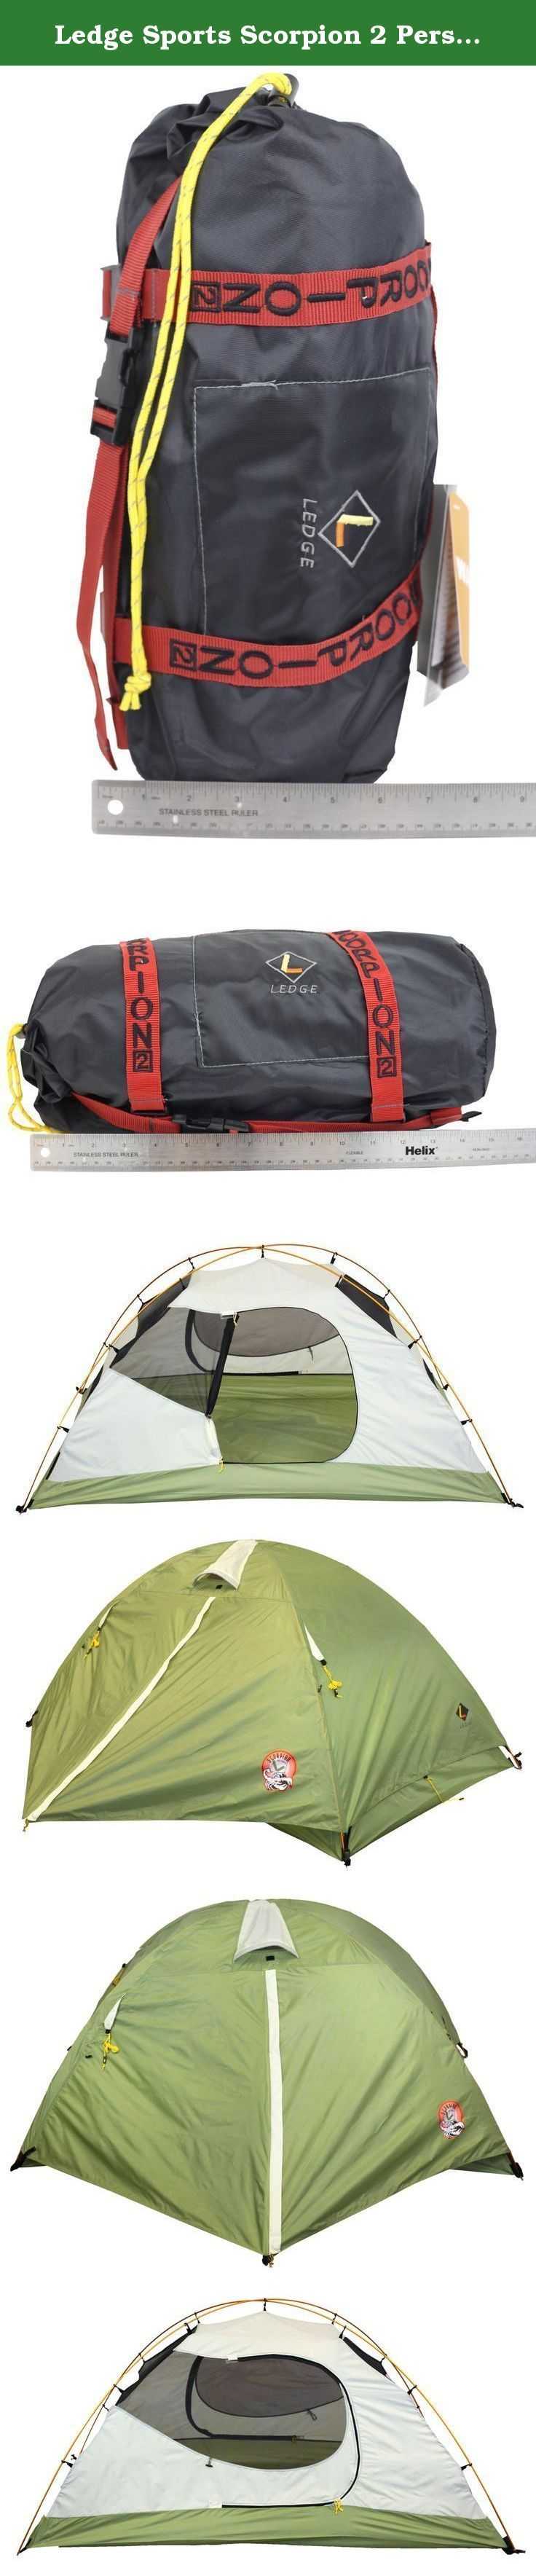 Ledge Sports Scorpion 2 Person Light Weight Aluminum Pole Backpacking Tent, Green, 95 x 58-Inch. The Scorpion lightweight 2 person tent with dimensions of (92-Inch x 58-Inch x 42-Inch Height), and is made with 1500mm Waterproofing construction on rainfly and rub floor. Other useful features are the 100% heat seam tape to stop water leakage, and a full coverage rainfly with 2 Vestibules. The sturdy 2 pole system of high quality aluminum provides easy assembly and aluminum stakes to secure...